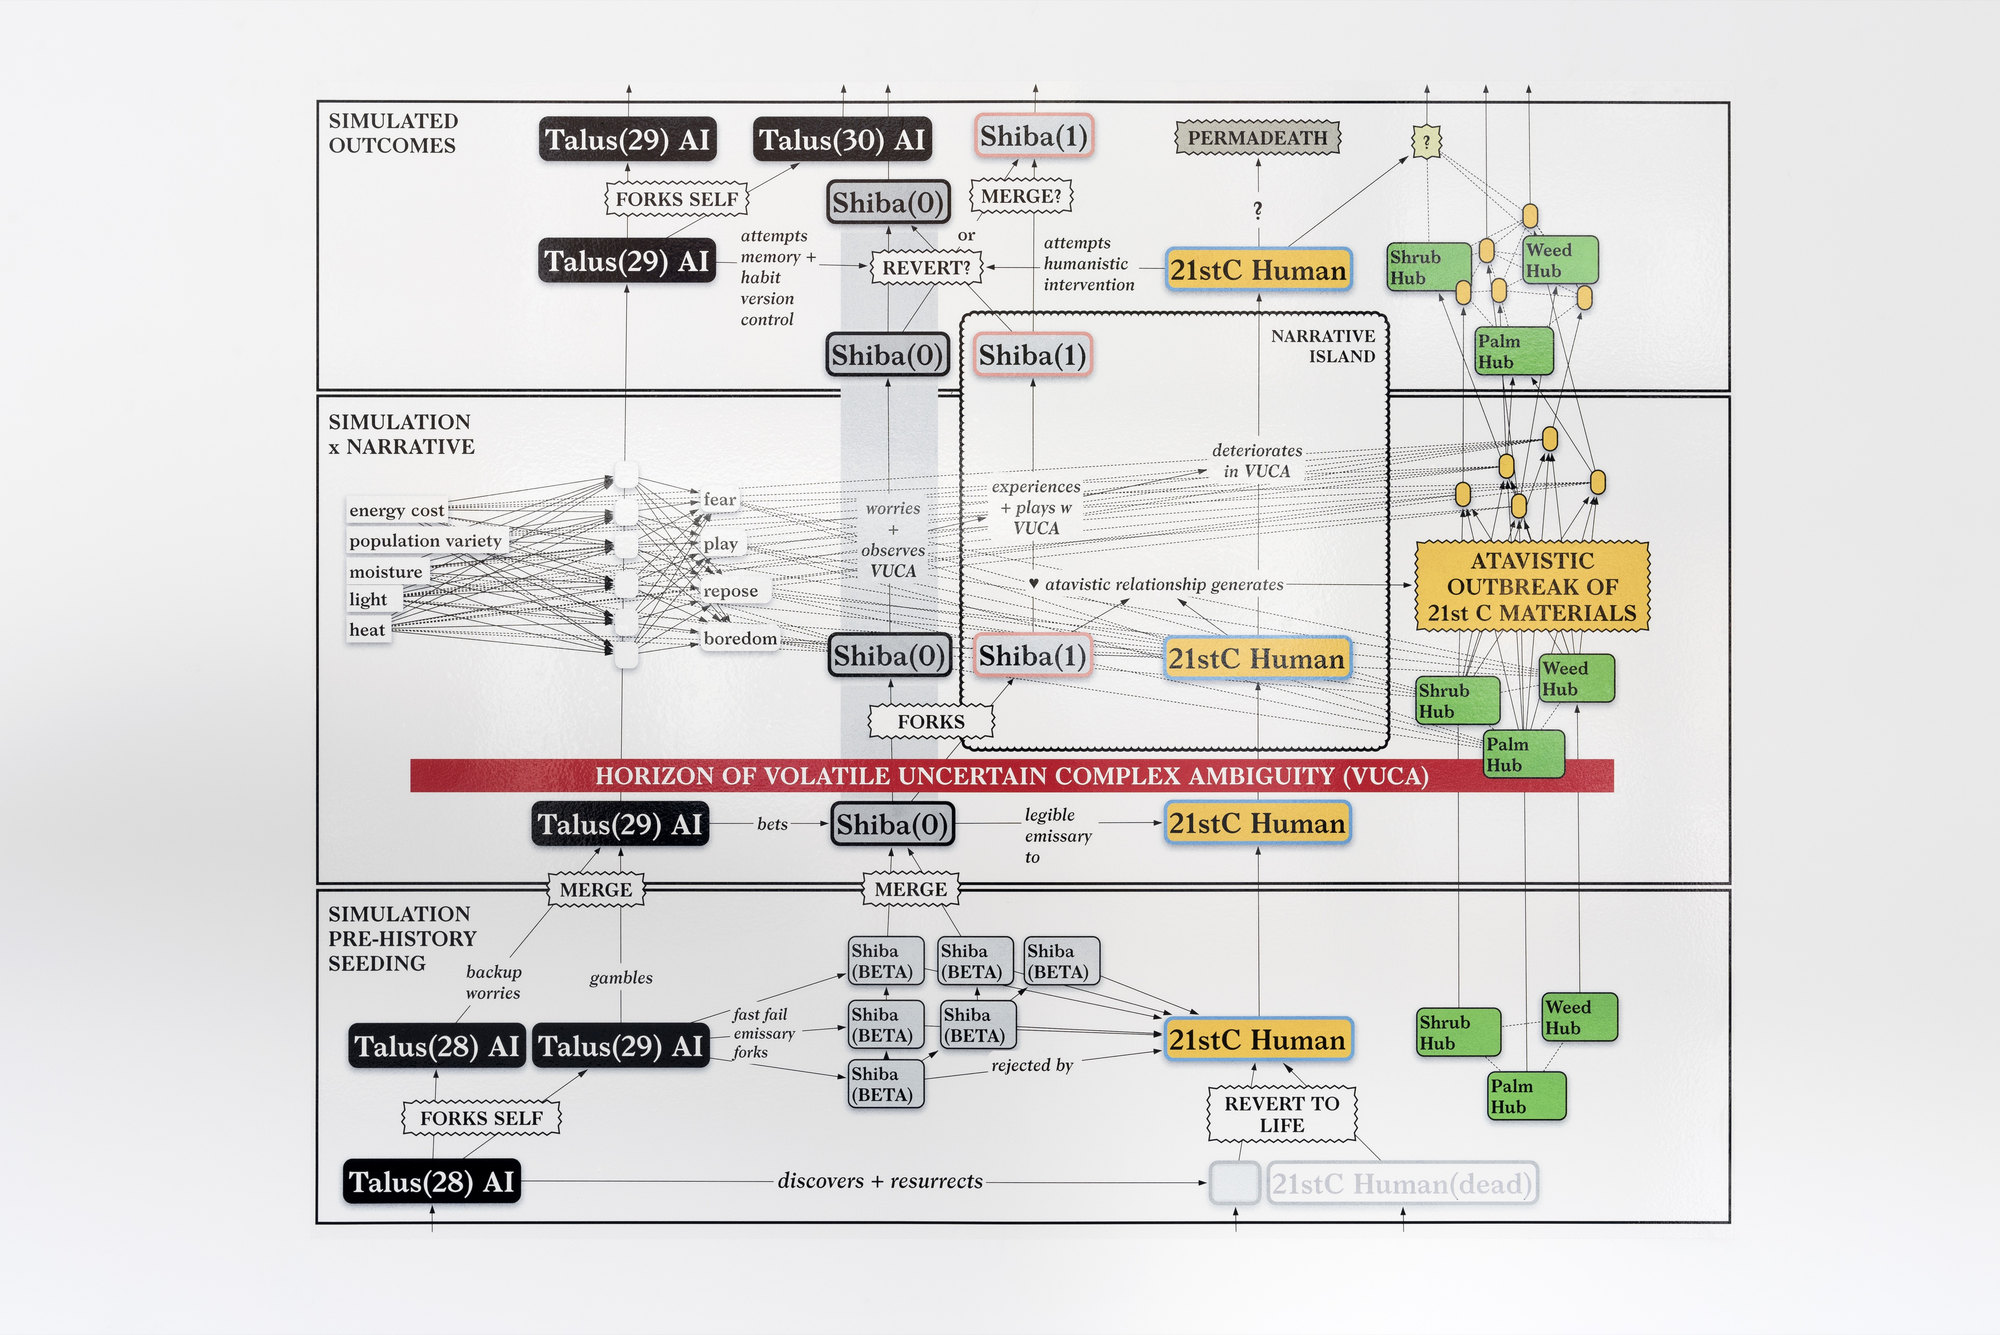 0_efap_diagram_detail_hi-res